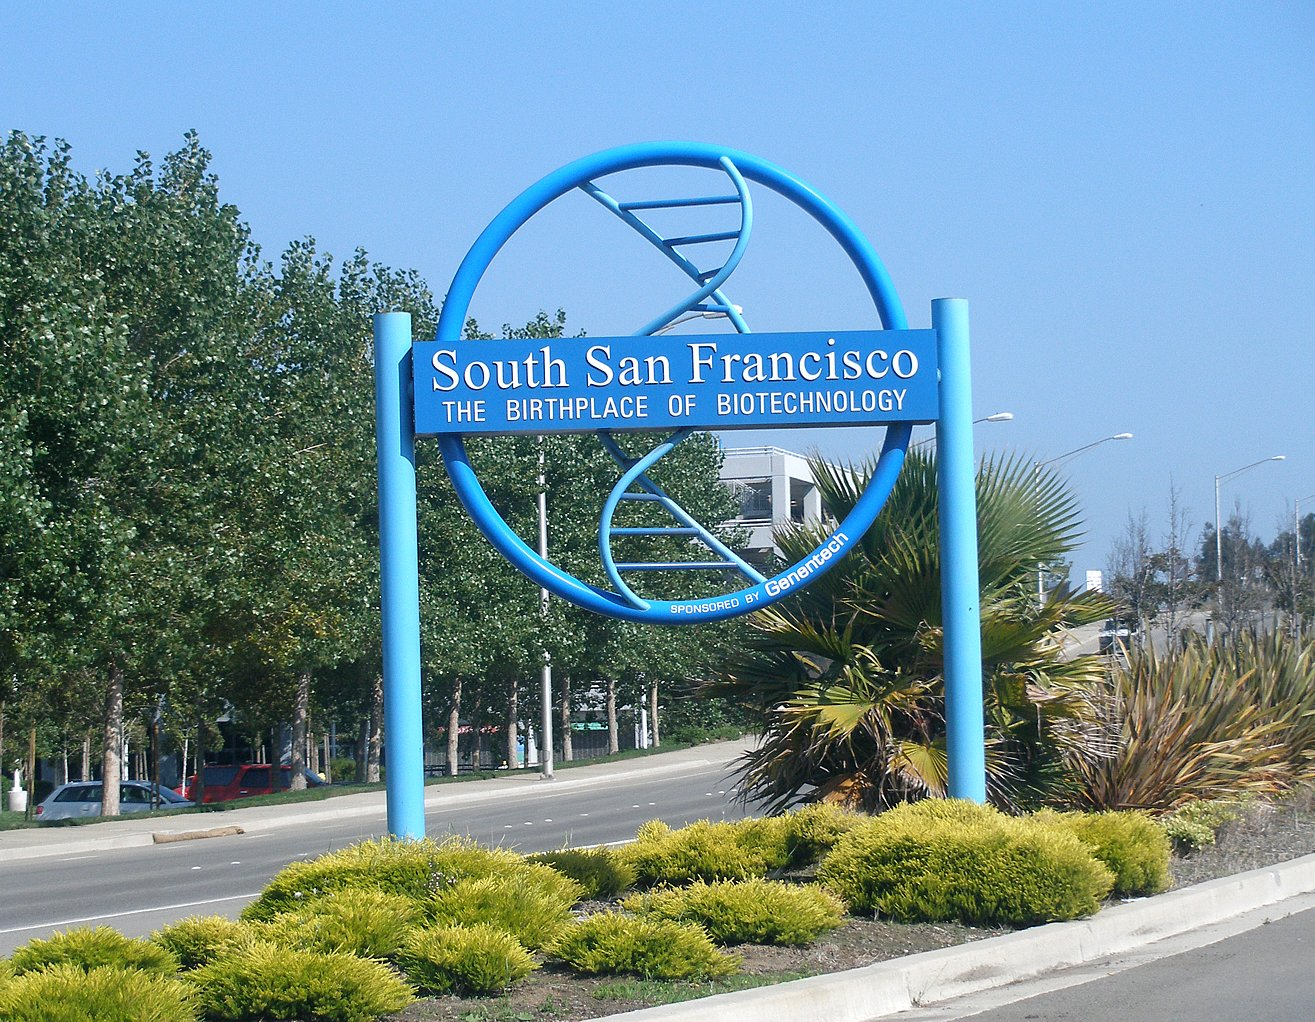 South San Francisco, CA